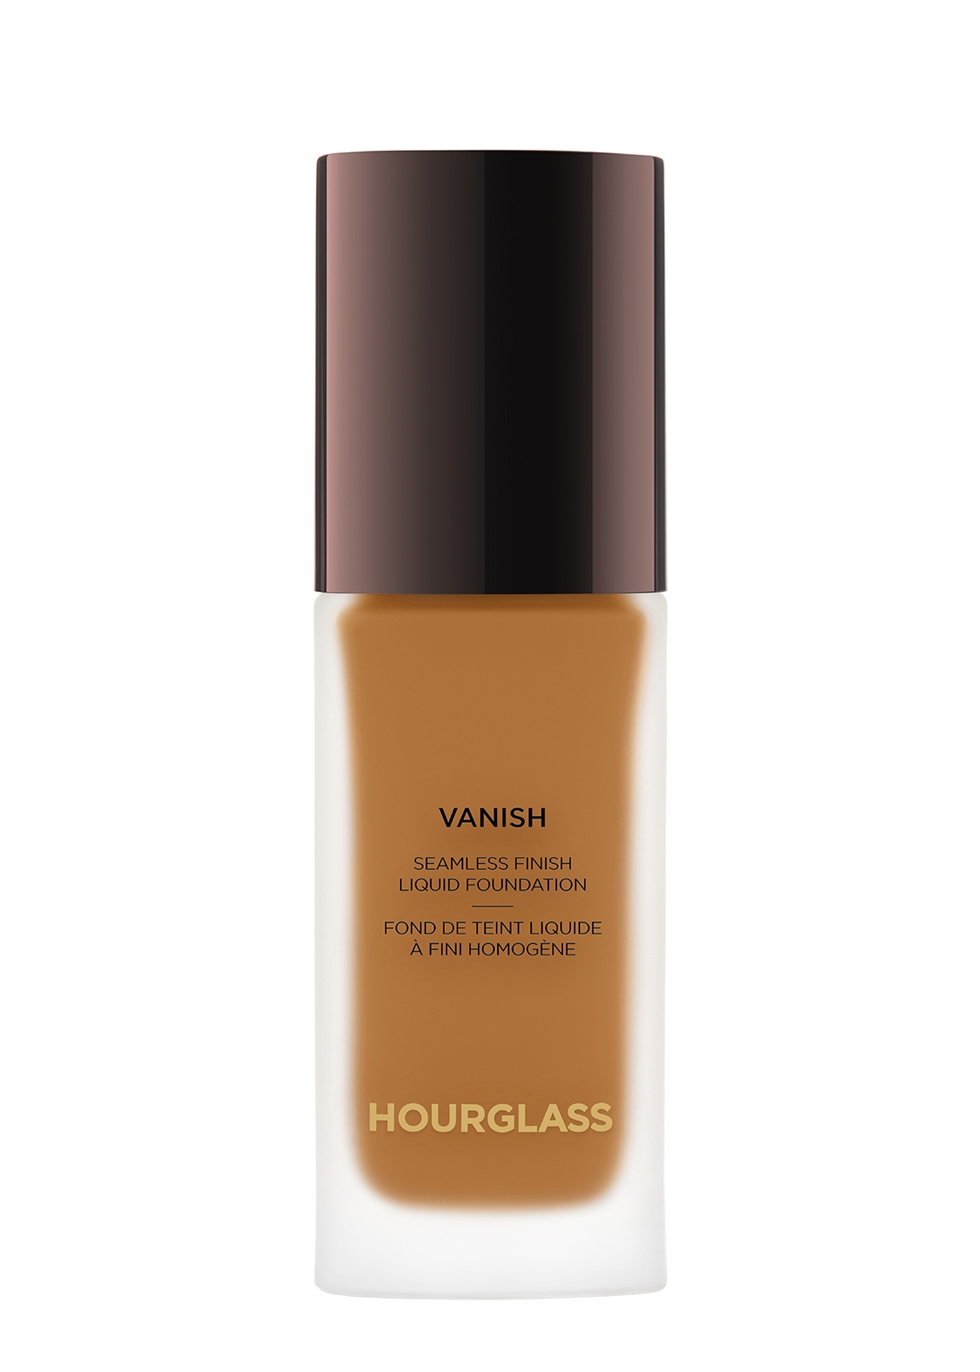 Vanish Seamless Finish Liquid Foundation 25ml - HOURGLASS